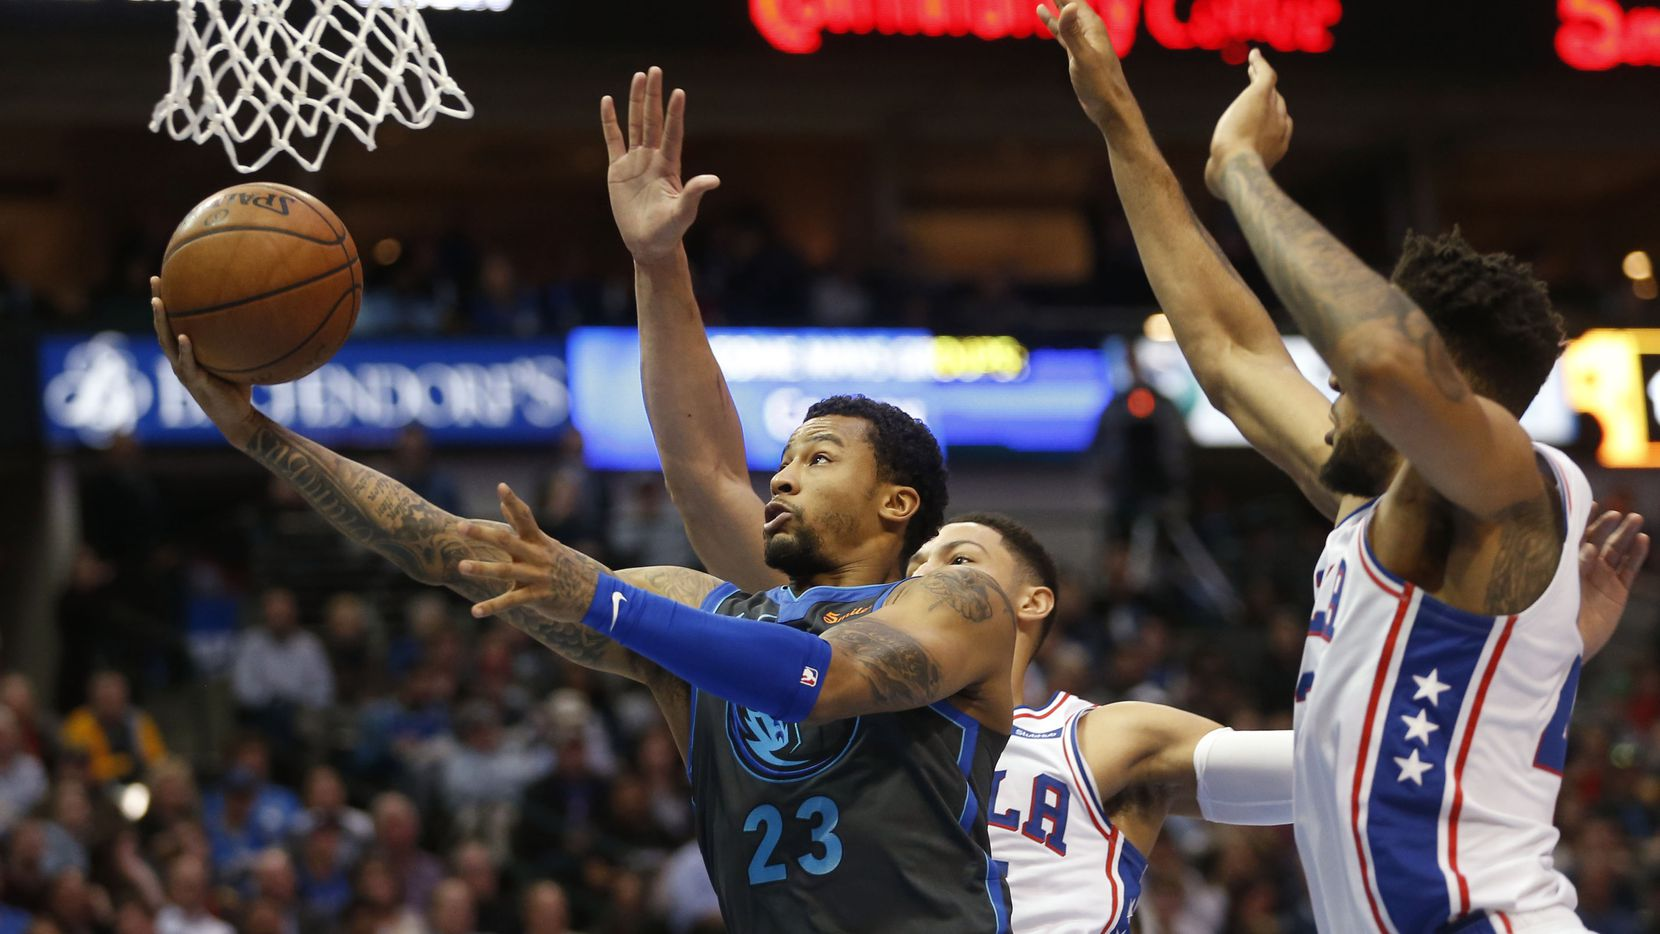 Dallas Mavericks guard Trey Burke (23) attempts a layup in front of Philadelphia 76ers guard Ben Simmons (25) and Philadelphia 76ers forward Jonah Bolden (43) during the first half of play at the American Airlines Center in Dallas on Monday, April 1, 2019. (Vernon Bryant/The Dallas Morning News)